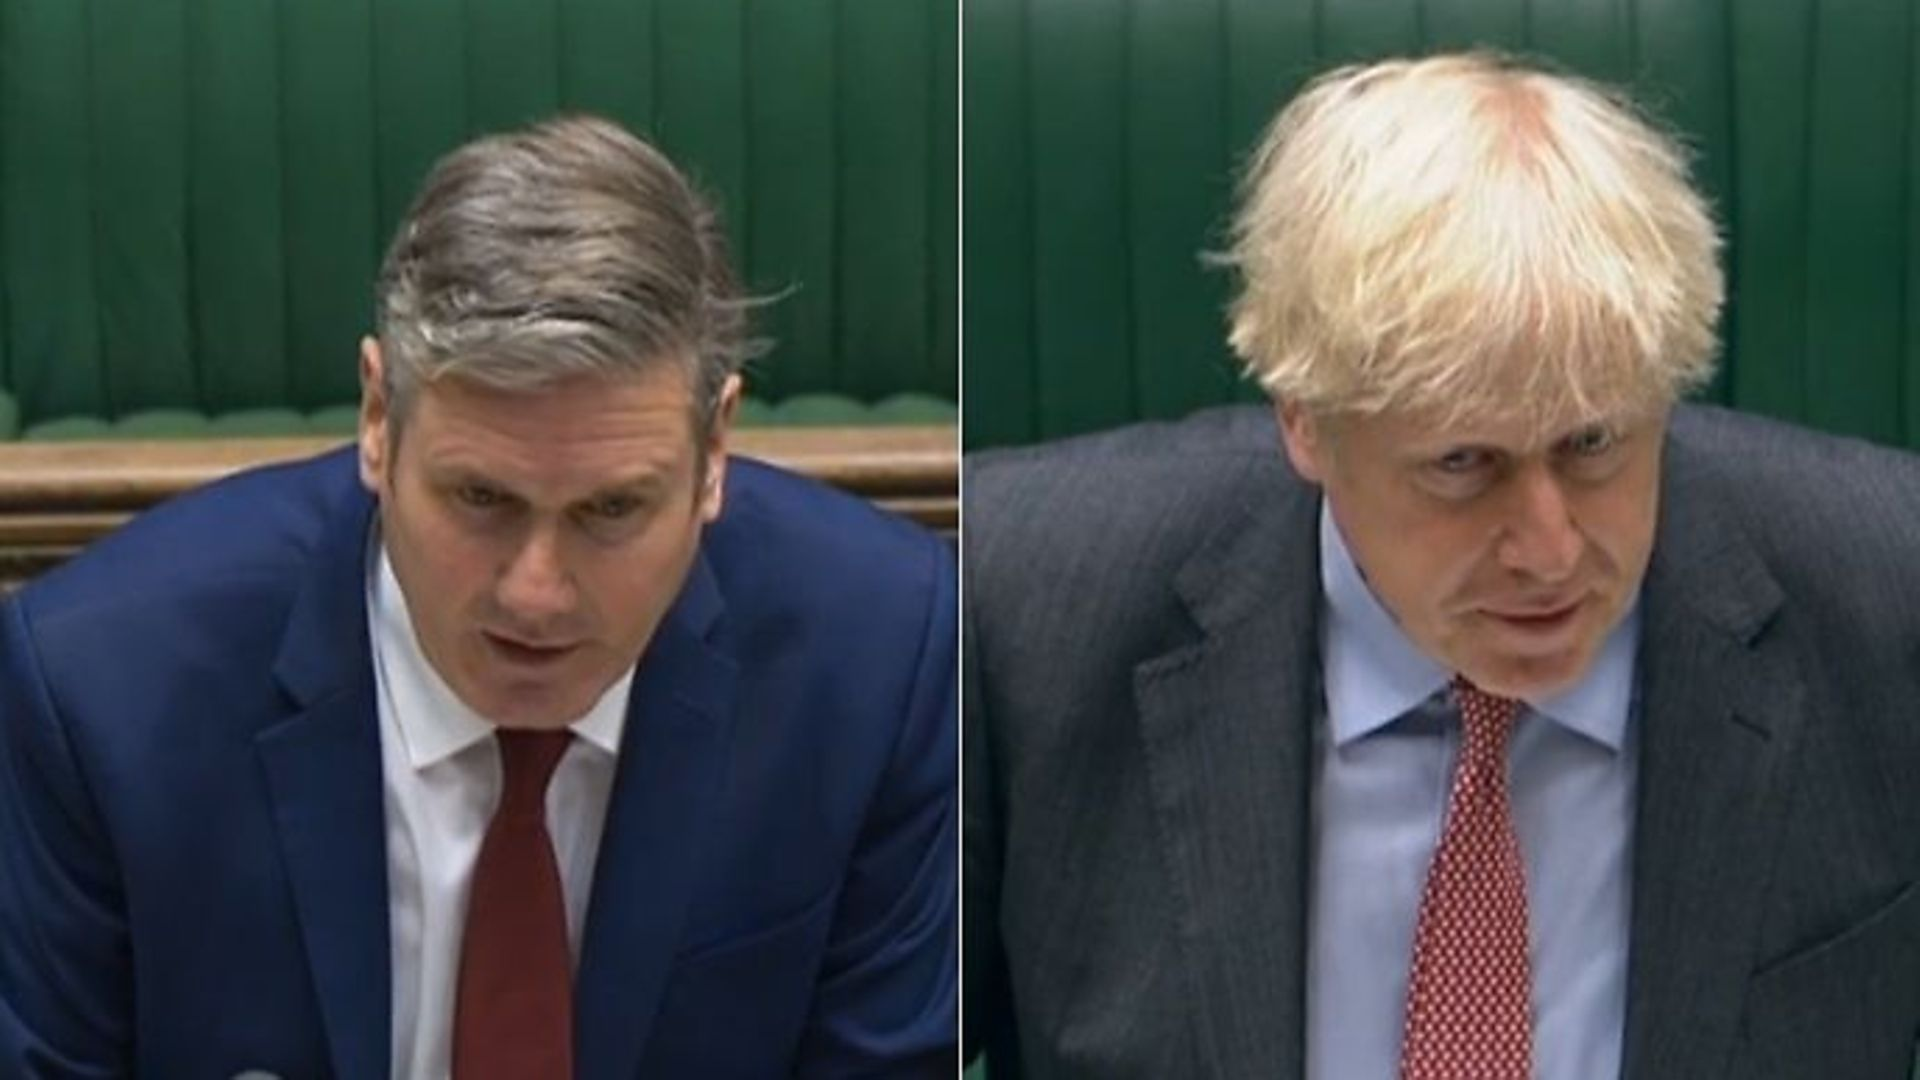 Opposition leader Sir Keir Starmer (L) and prime minister Boris Johnson in the House of Commons - Credit: parliamentlive.tv